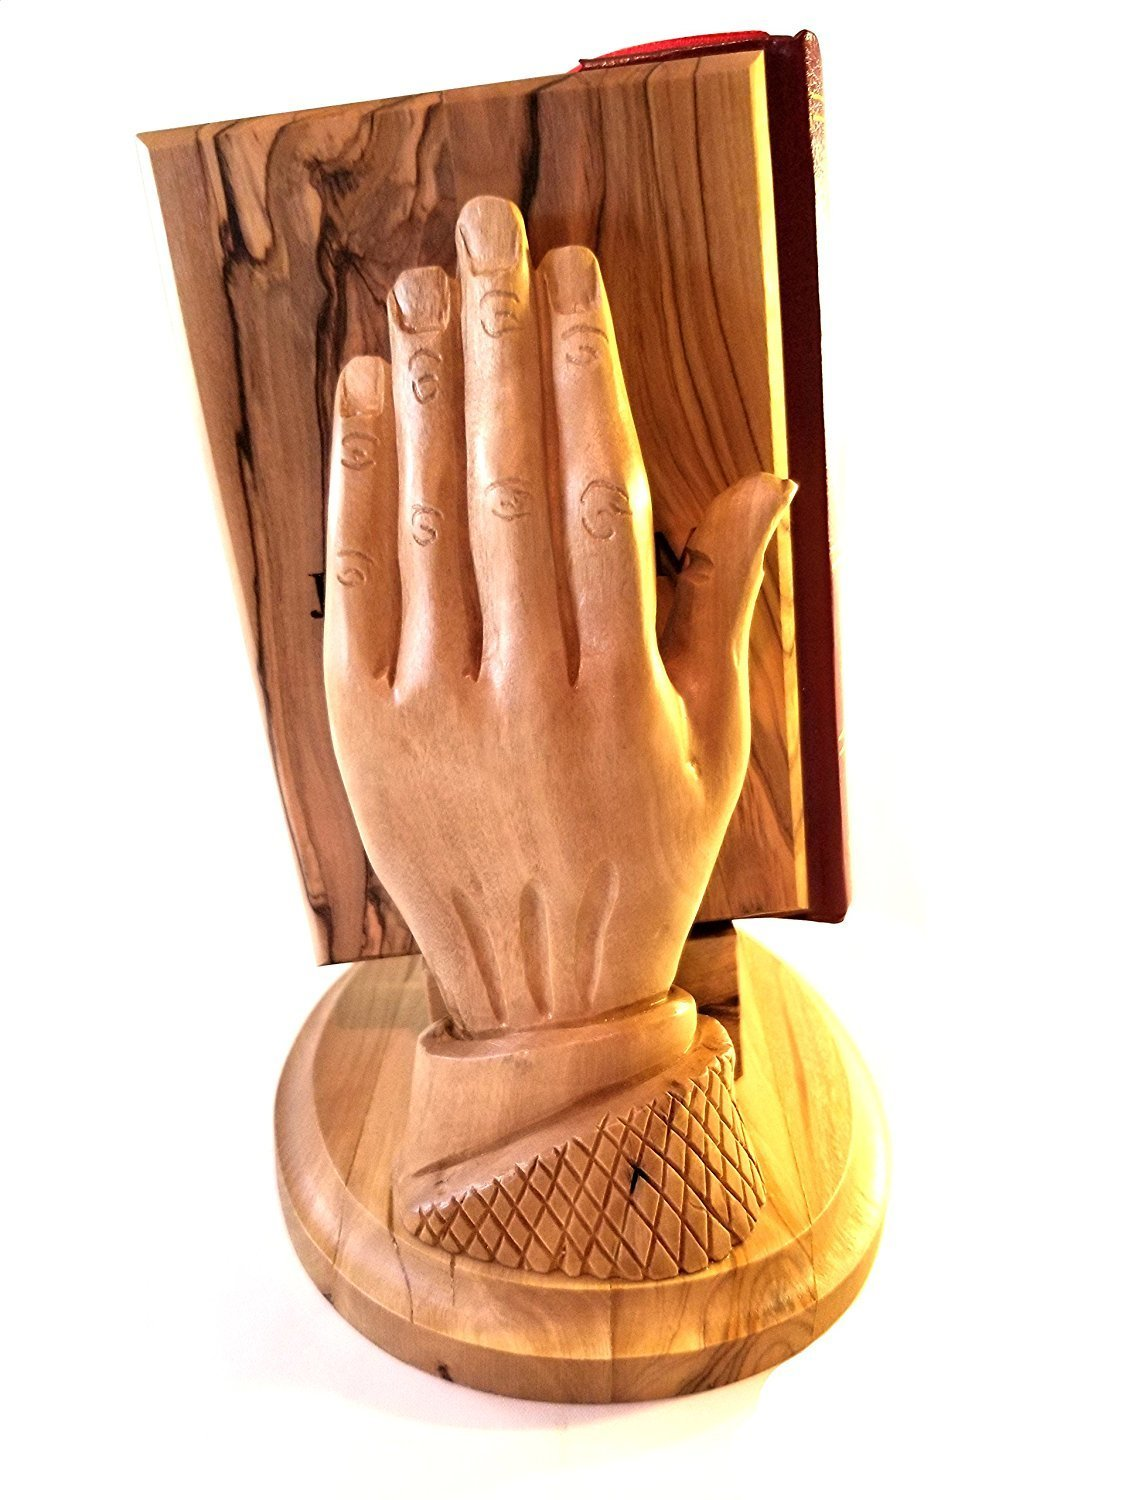 English KJV Holy Bible with Olive Wood Cover from Jerusalem, with Praying Hands Bible Holder